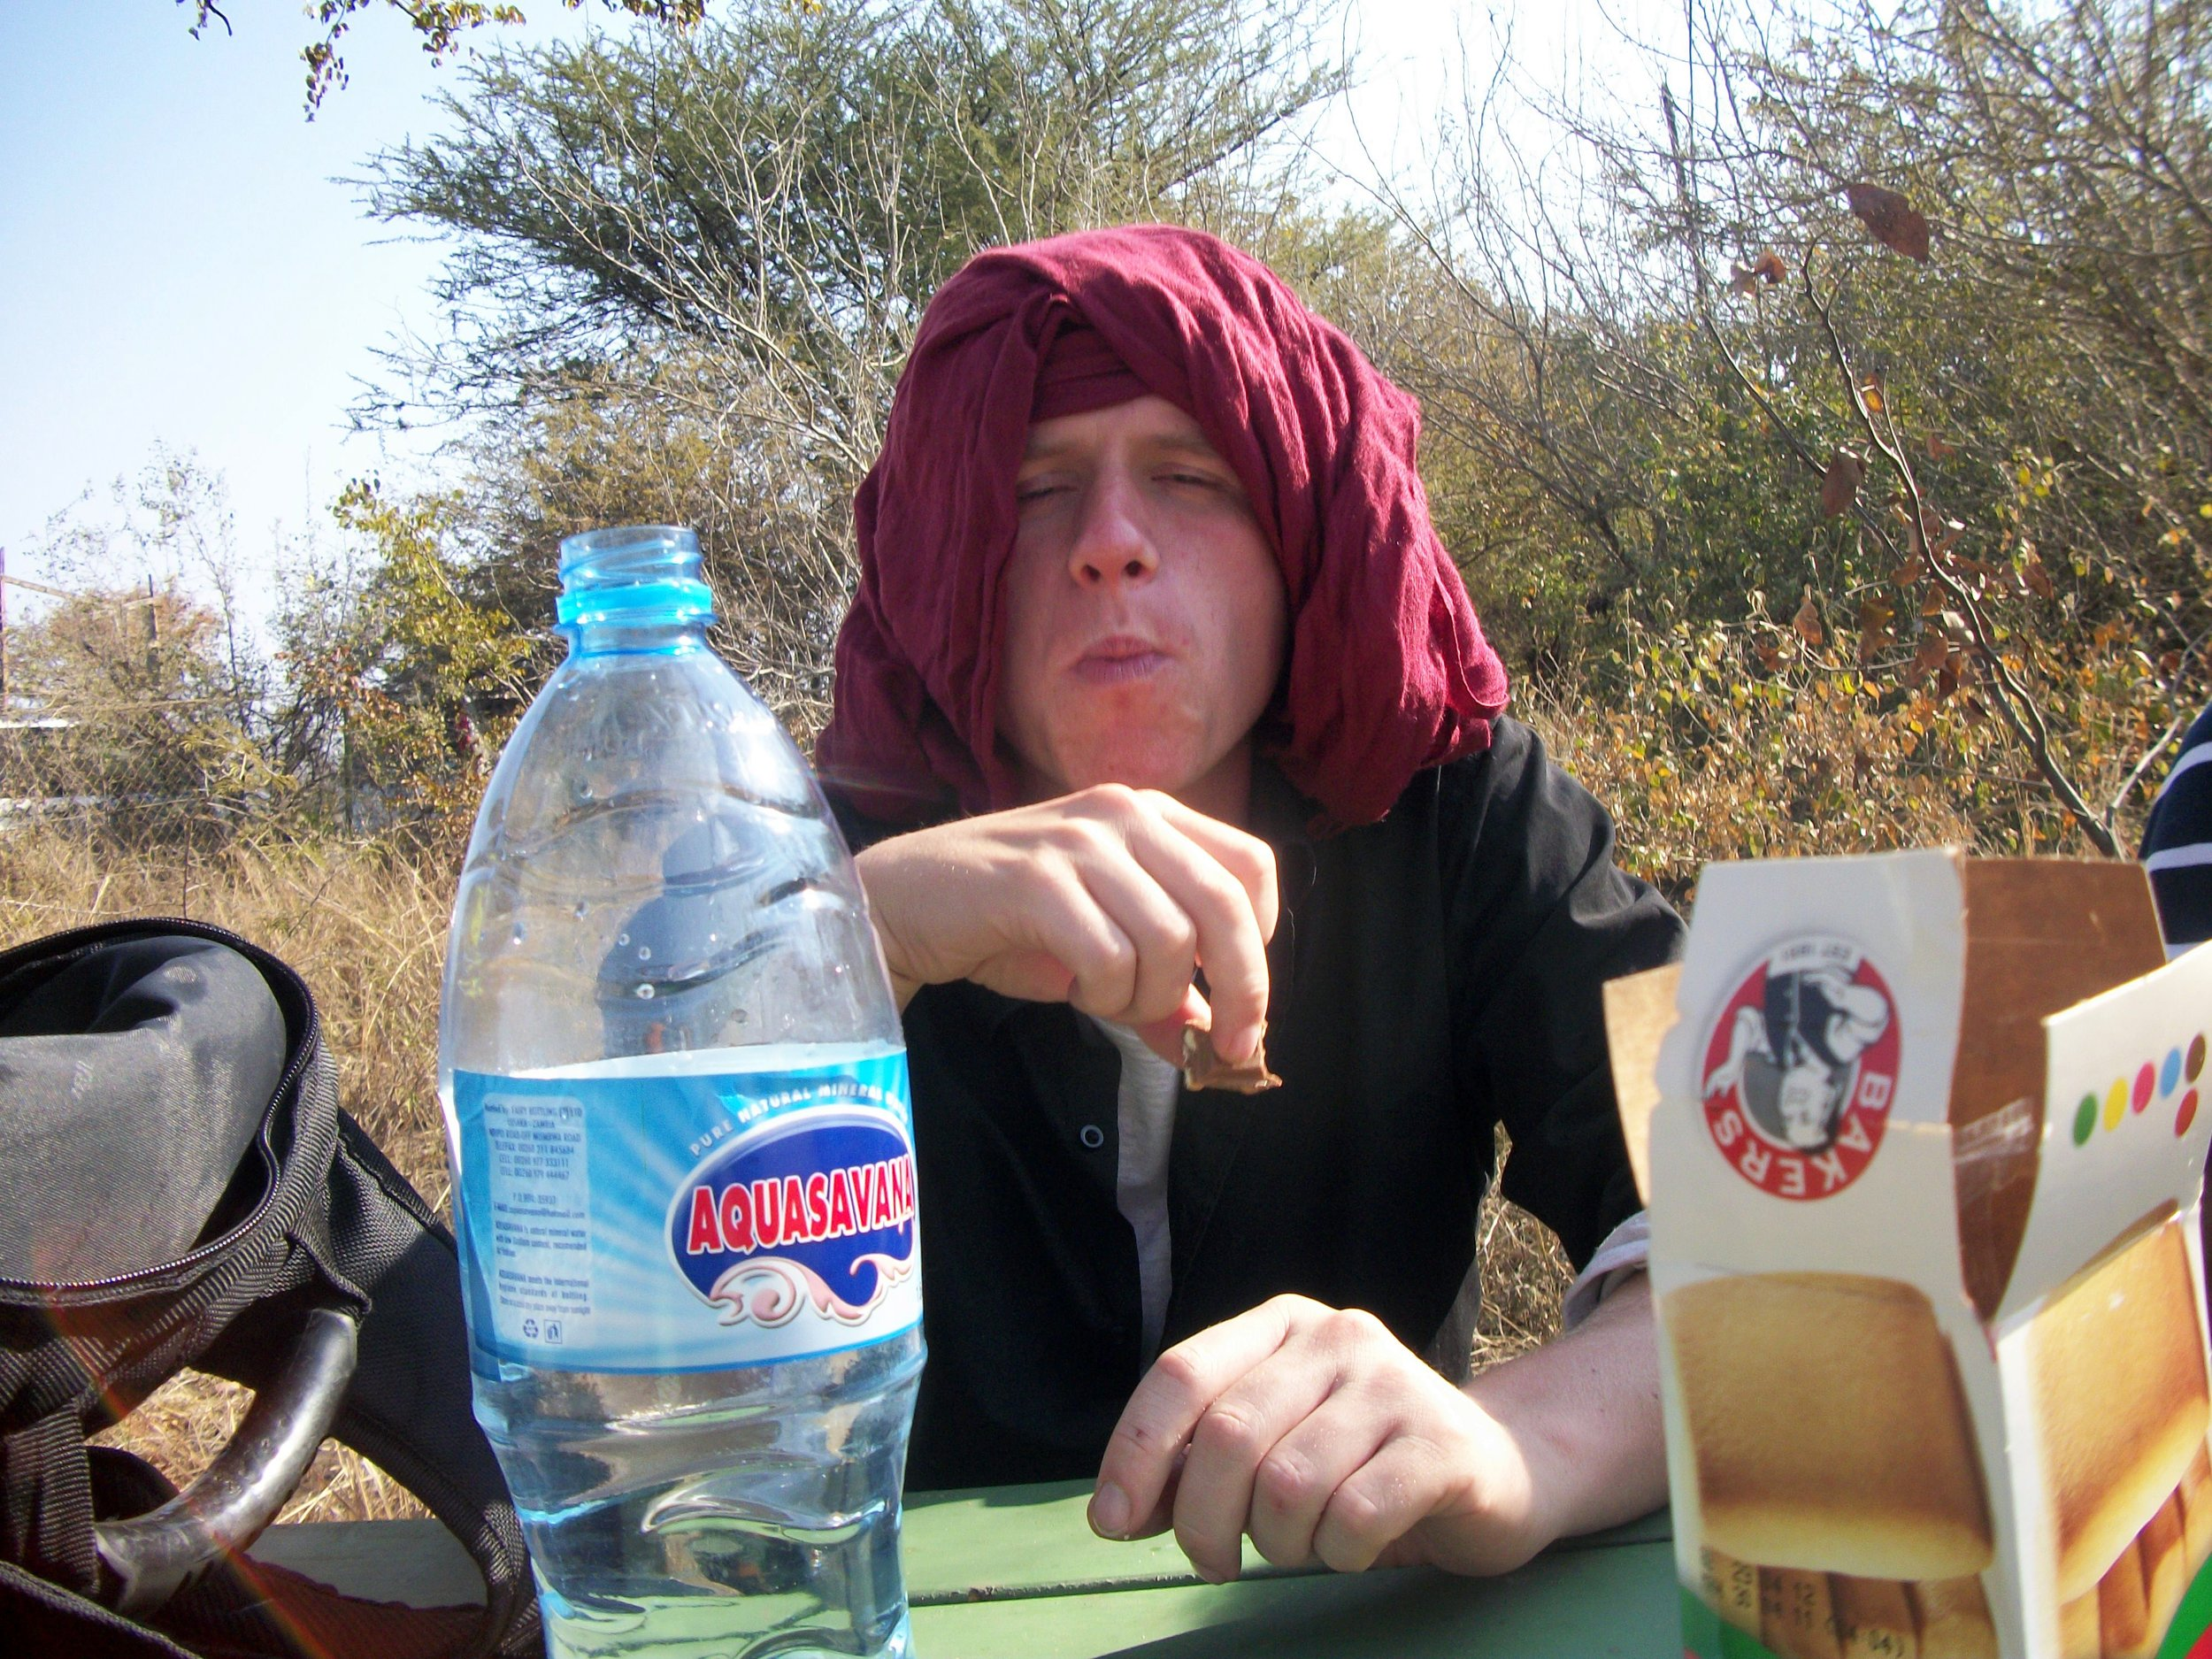 Sometimes the only thing you can do is have a biscuit. And wrap a scarf around your head to stop sunburn.